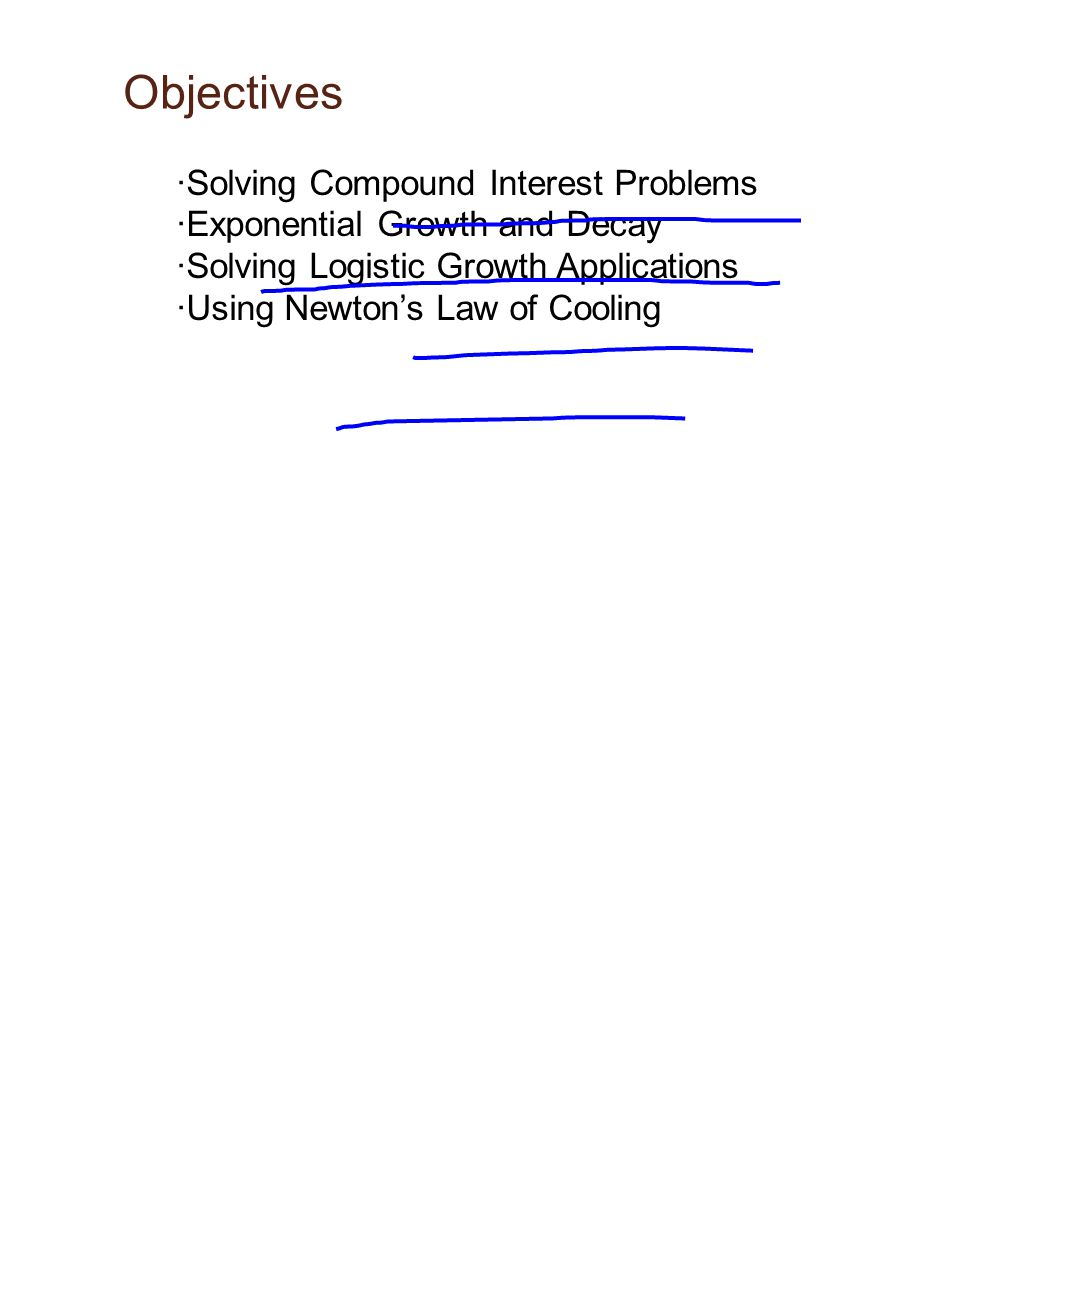 Objectives ·Solving Compound Interest Problems